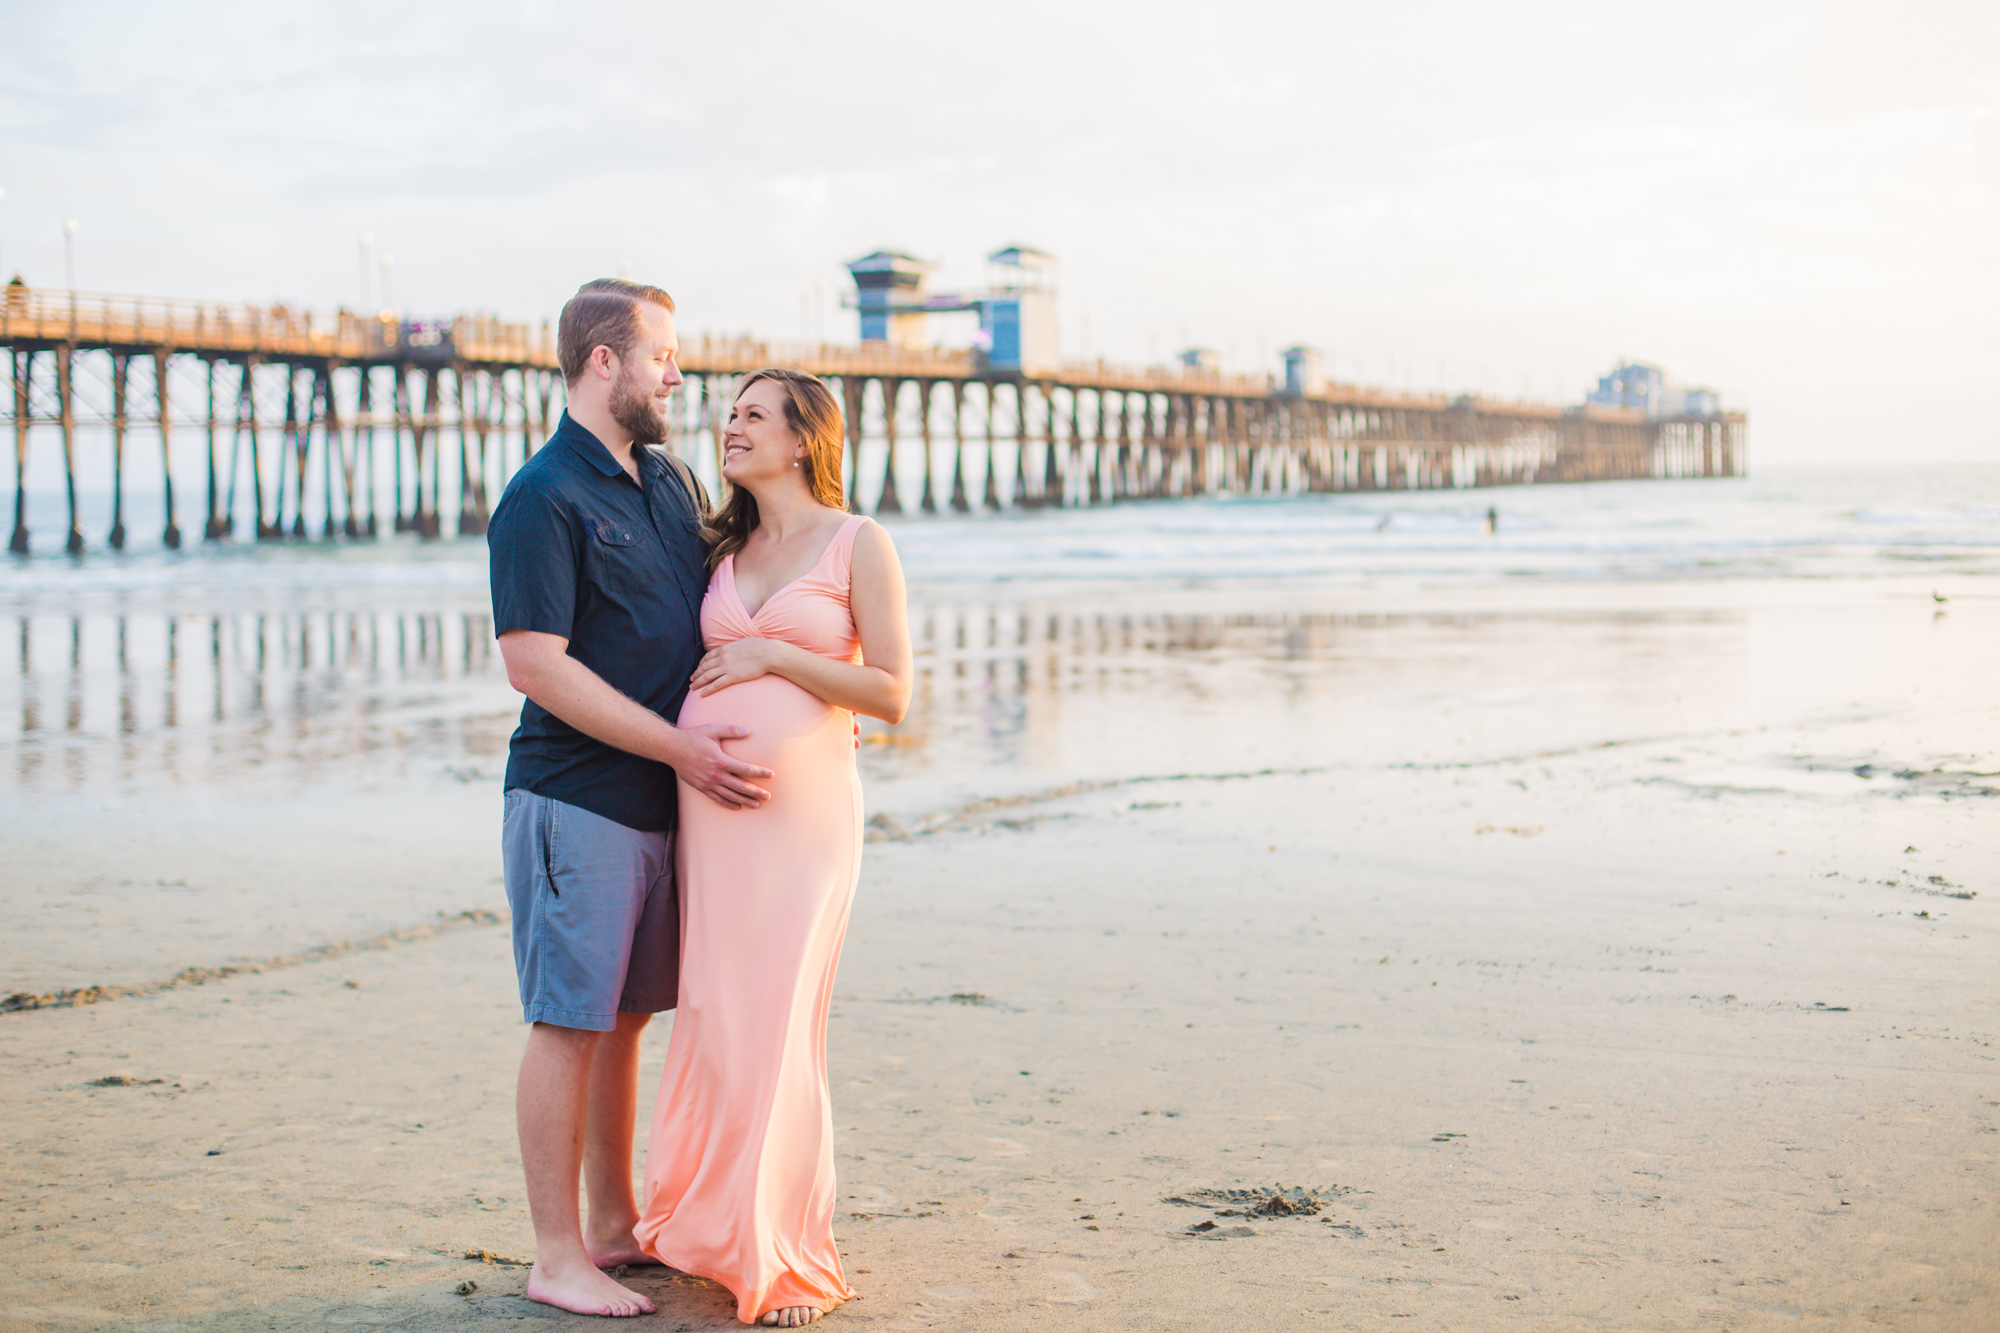 Sunset pier maternity session picture in Oceanside, California